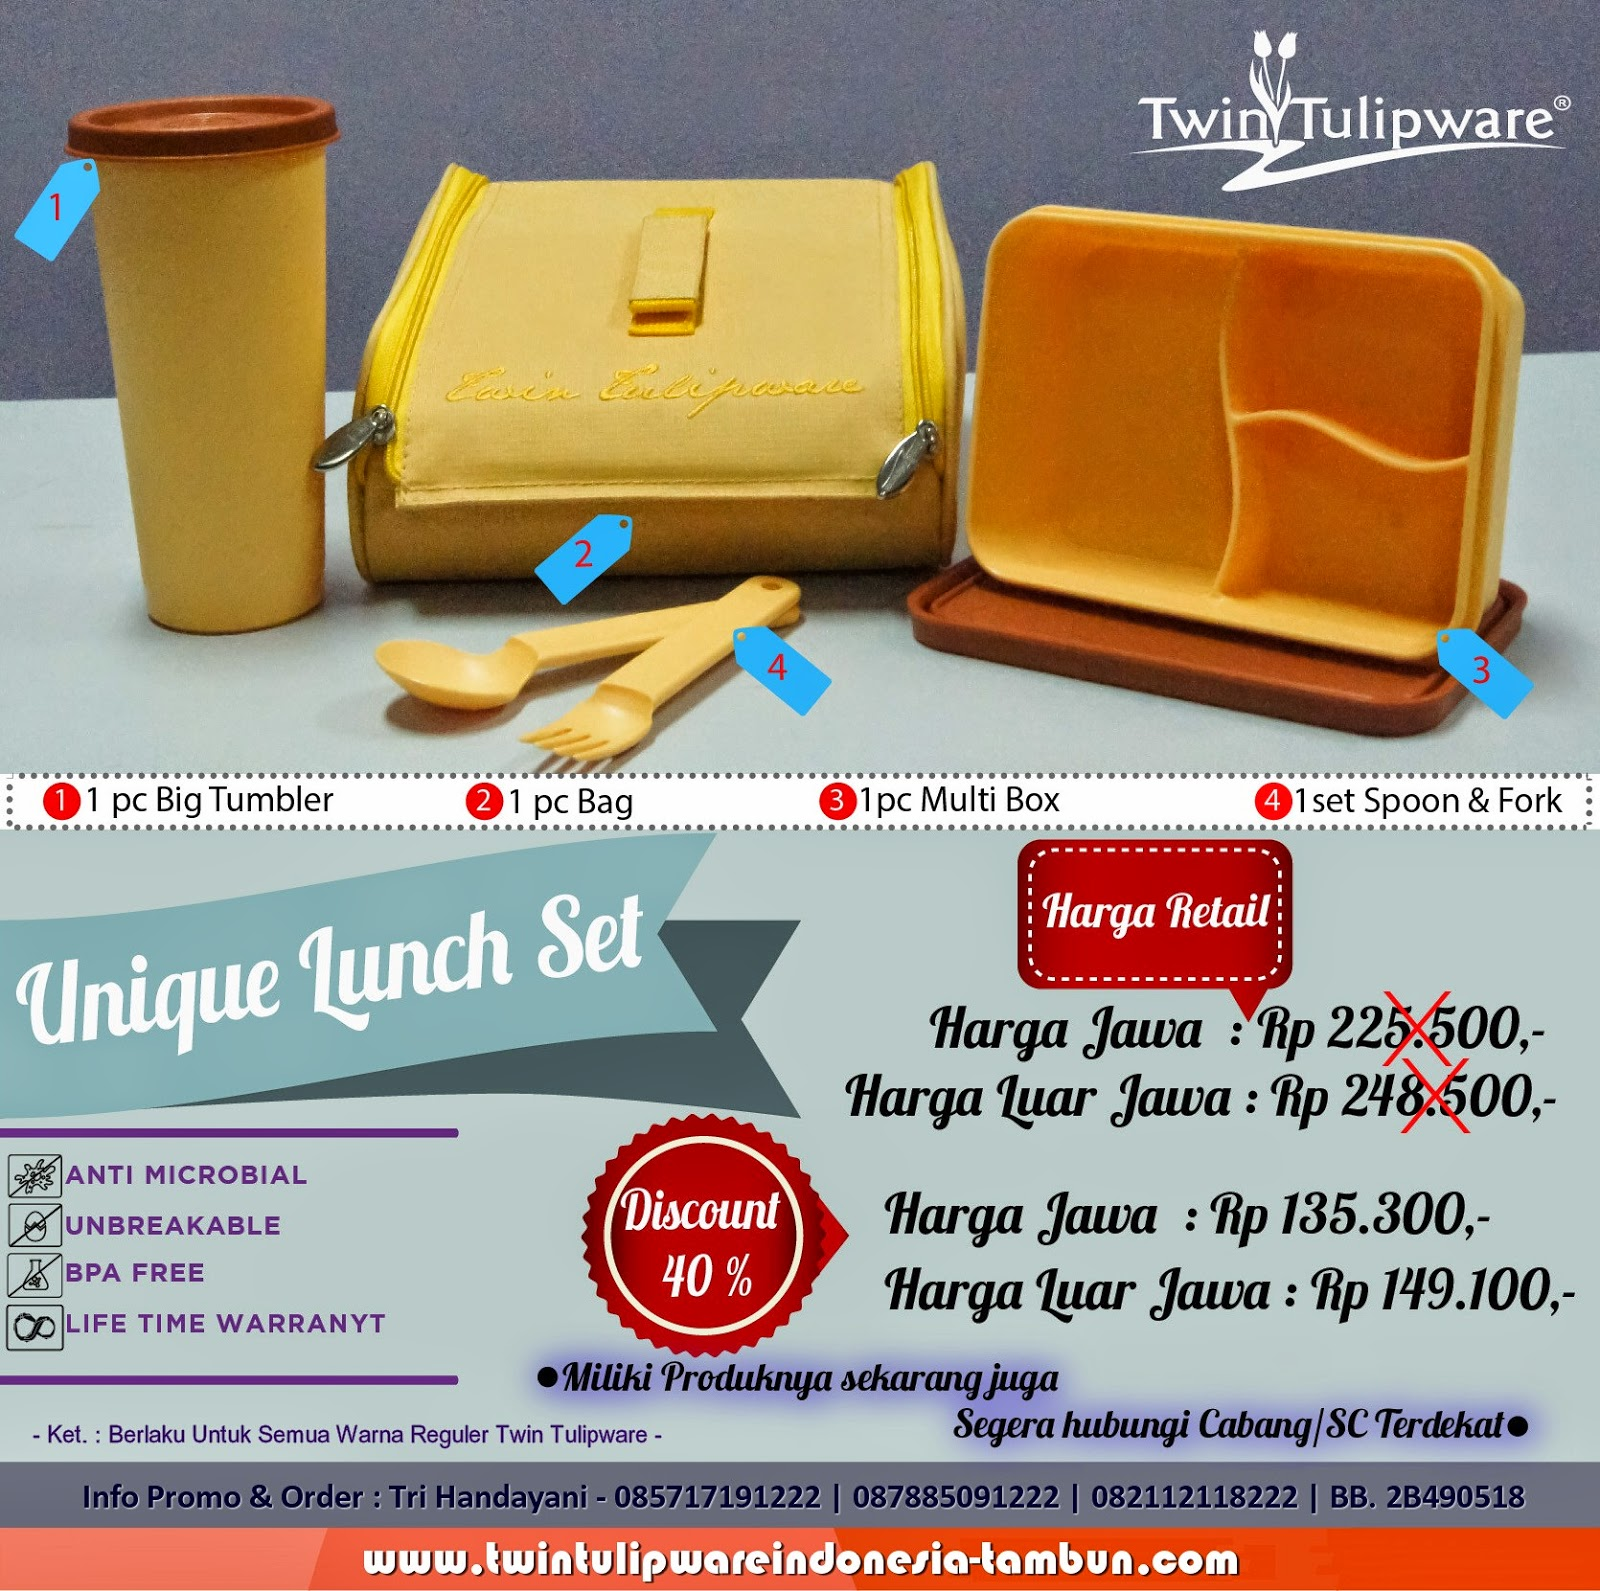 Unique Lunch Set - Produk Baru Tulipware 2014 >> Diskon 40%